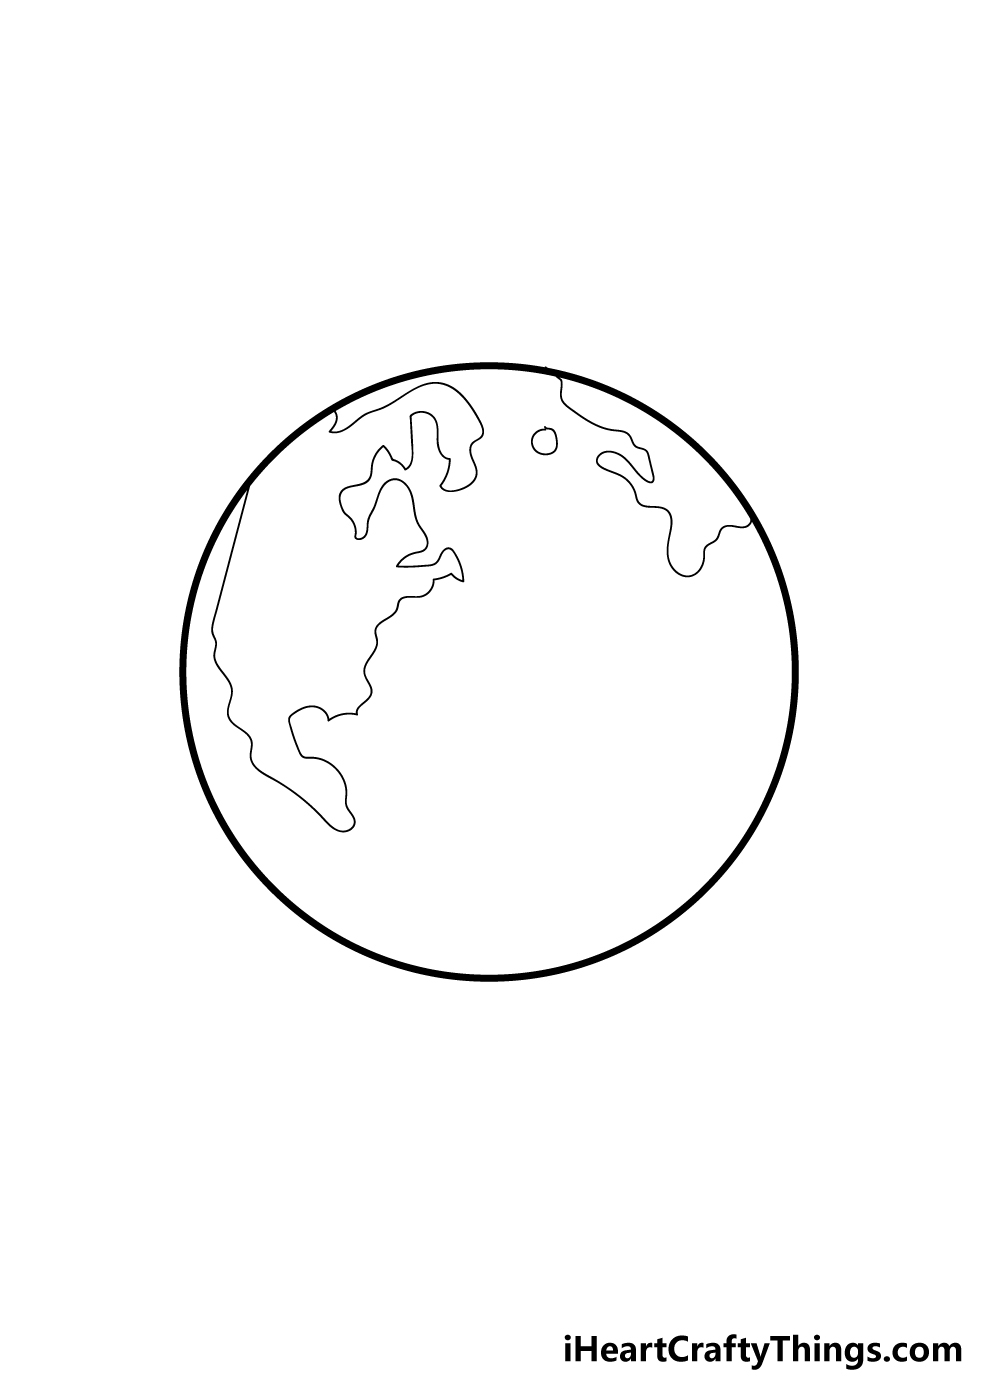 earth drawing step 3